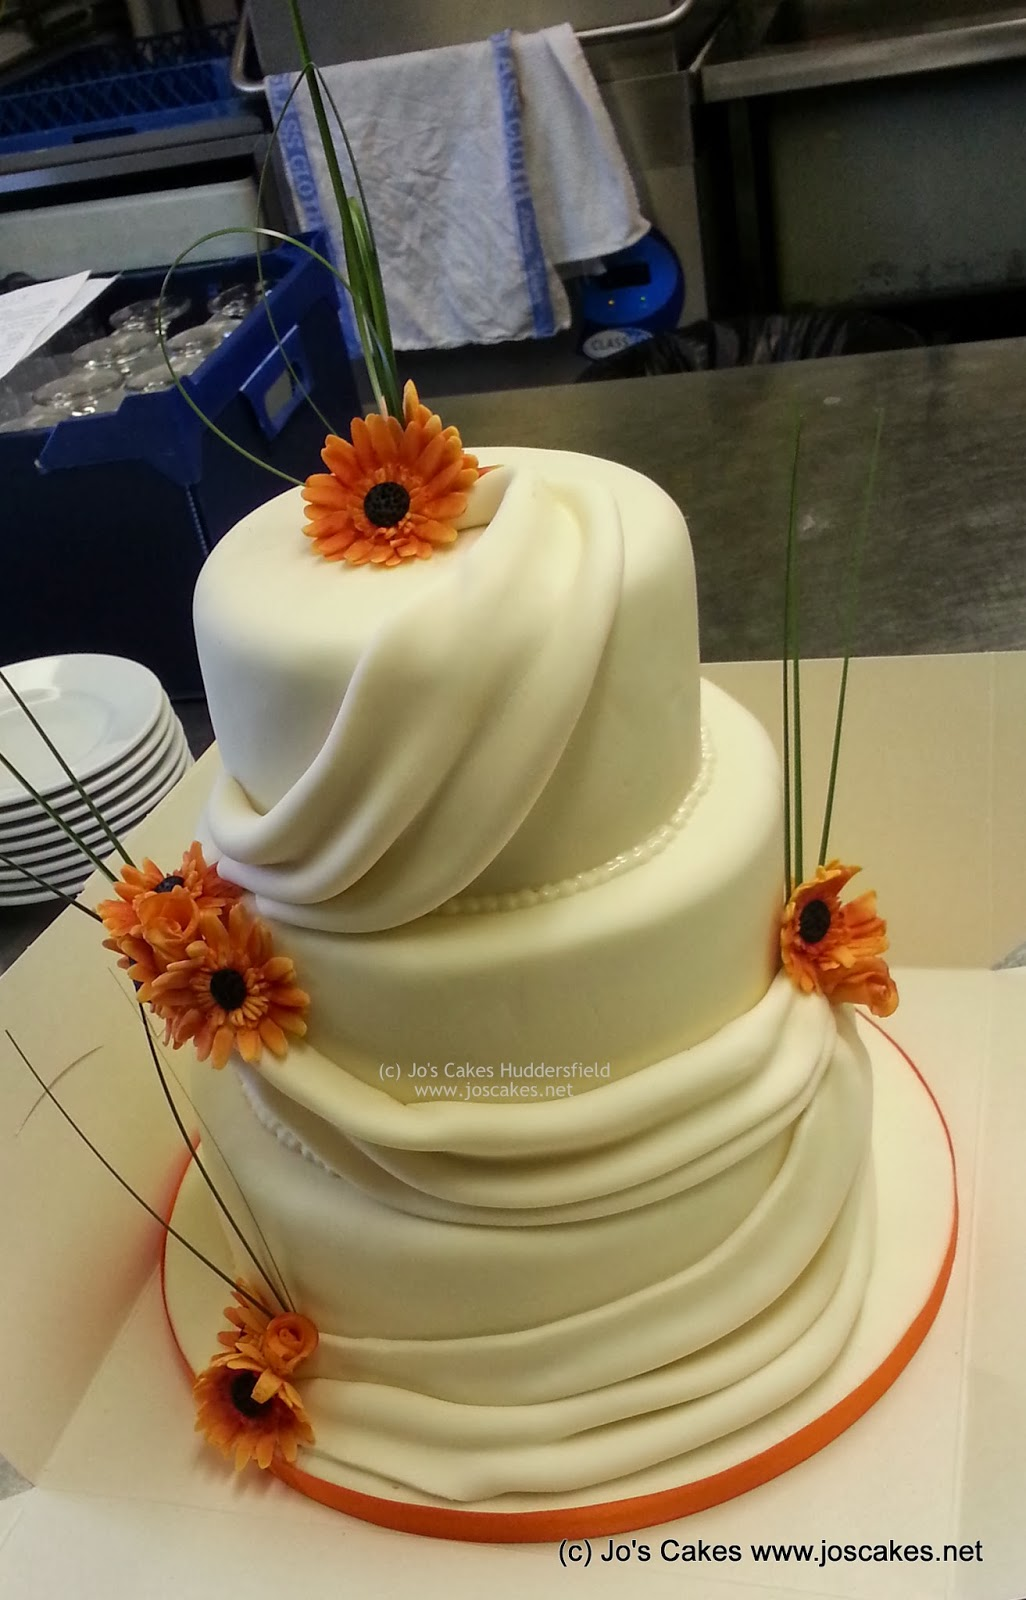 Jo s Cakes 3 Tier Orange Gerberas Wedding Cake